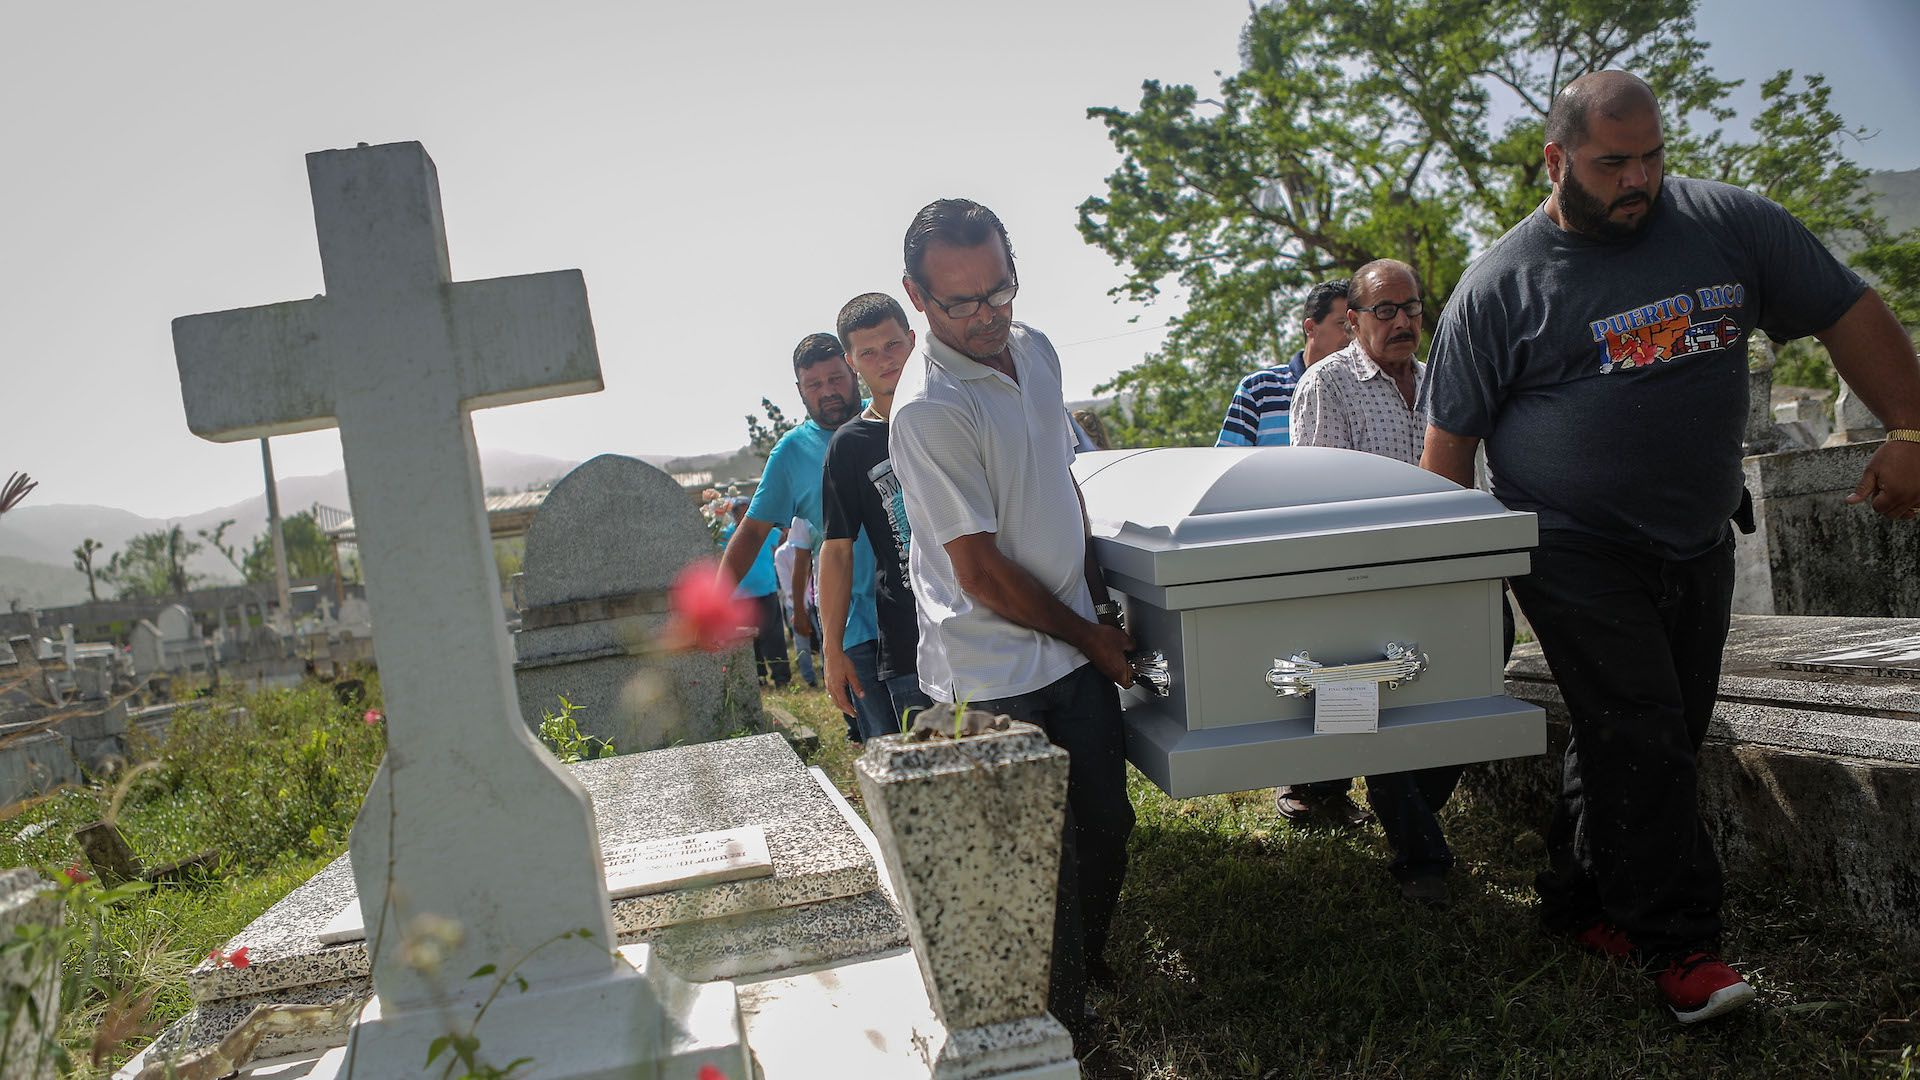 Mourners carry the casket of Wilfredo Torres Rivera, 58, who died October 13 in Puerto Rico following Hurricane Maria.